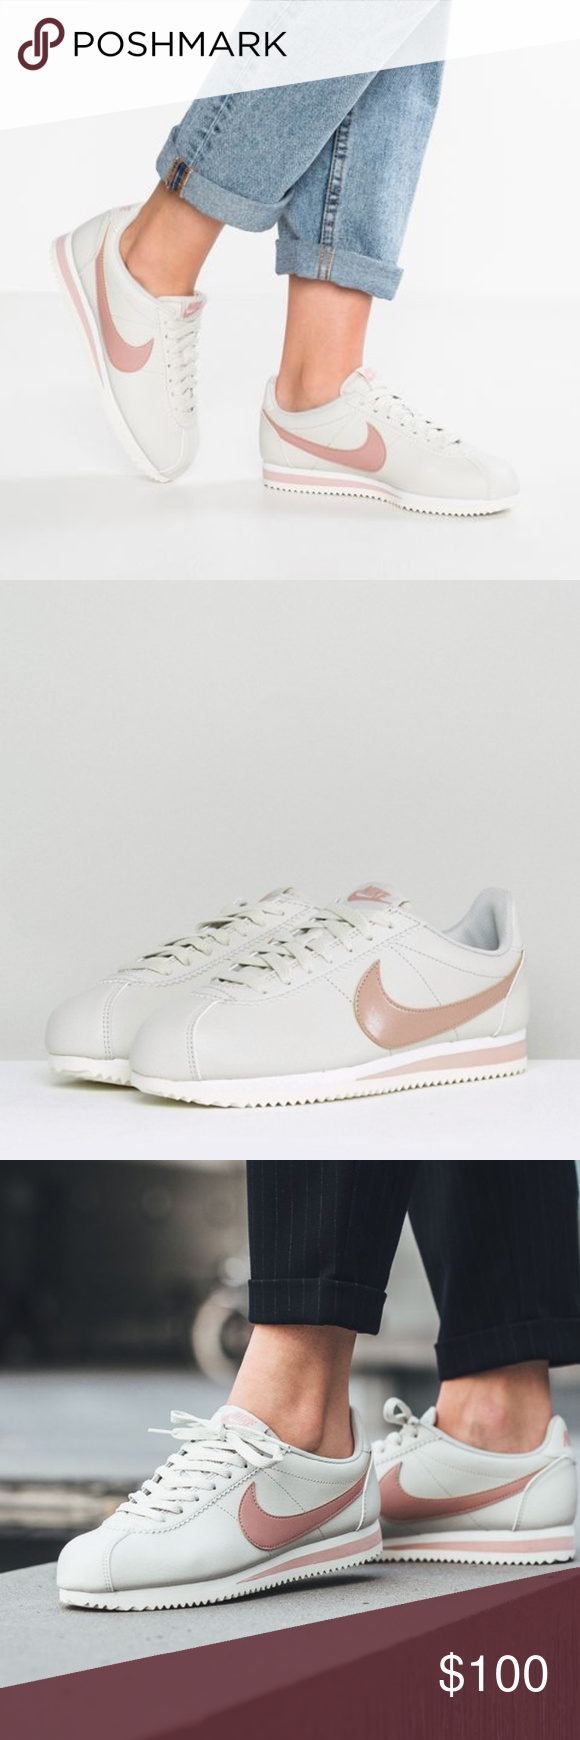 Pin by margaux bourelly on chaussures | Pinterest | Nike classic cortez  leather, Nike classic cortez and Classic cortez